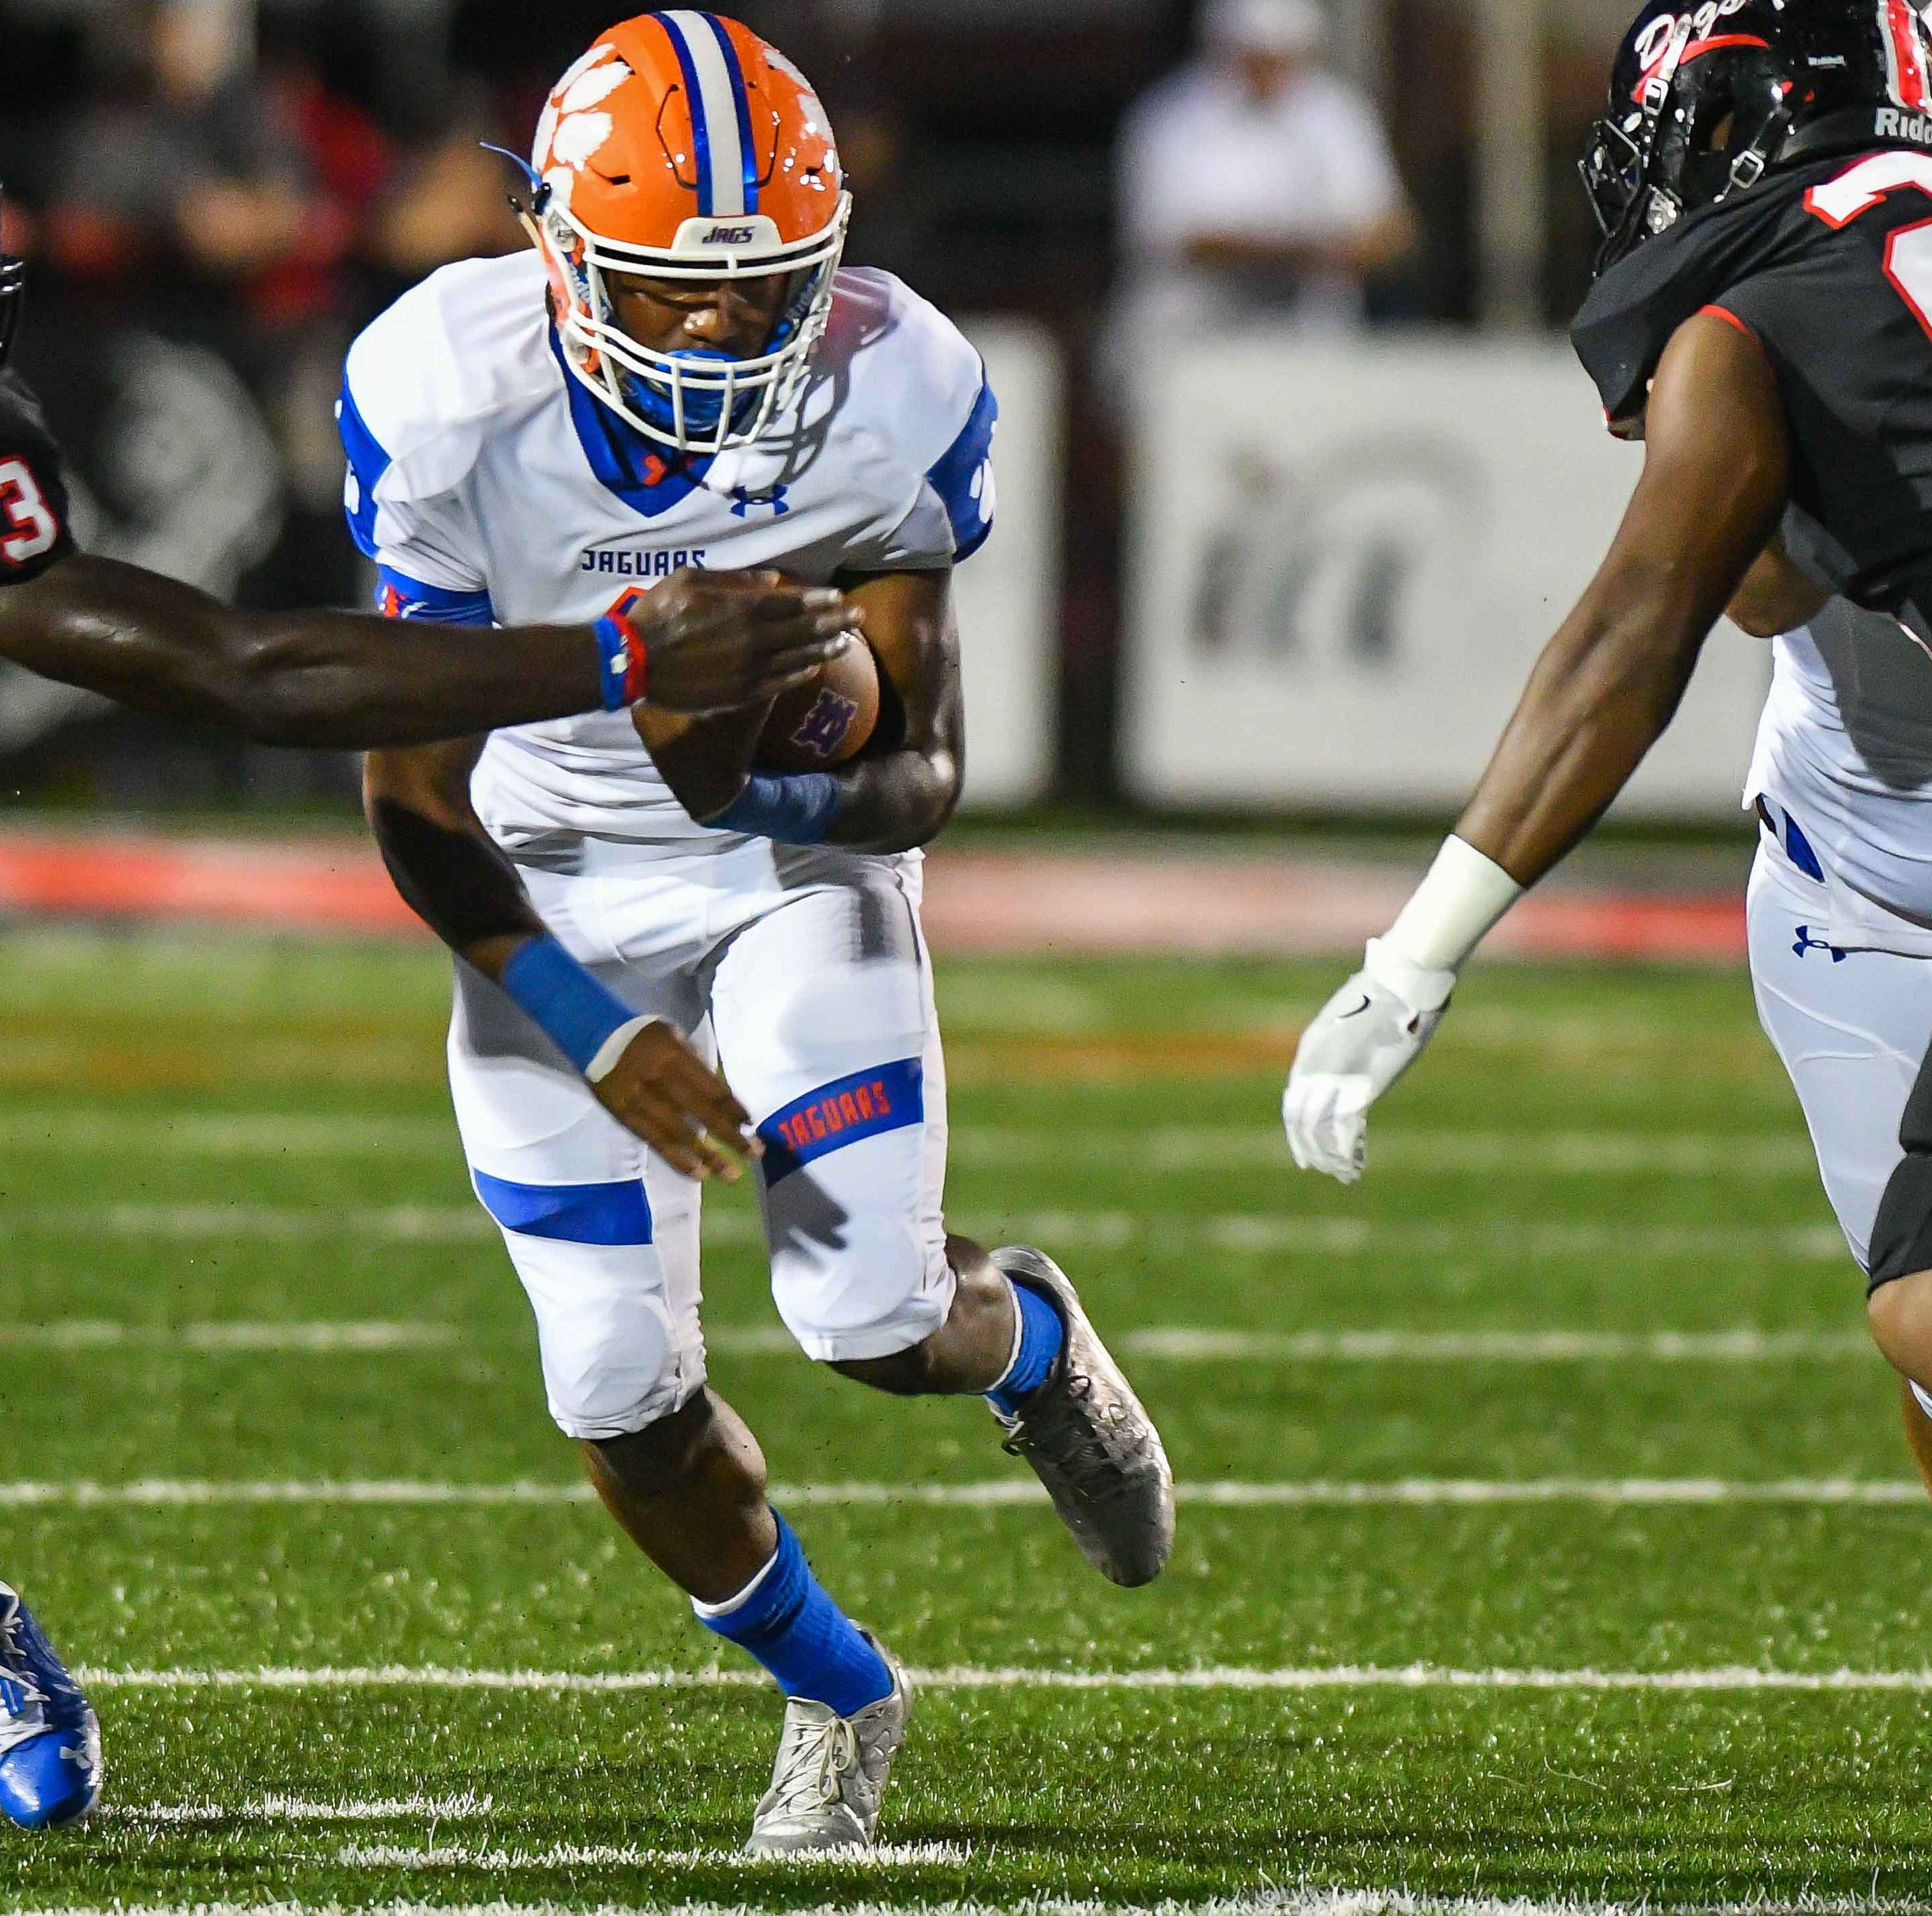 Brandon defense steps up to beat Madison Central in top-10 matchup